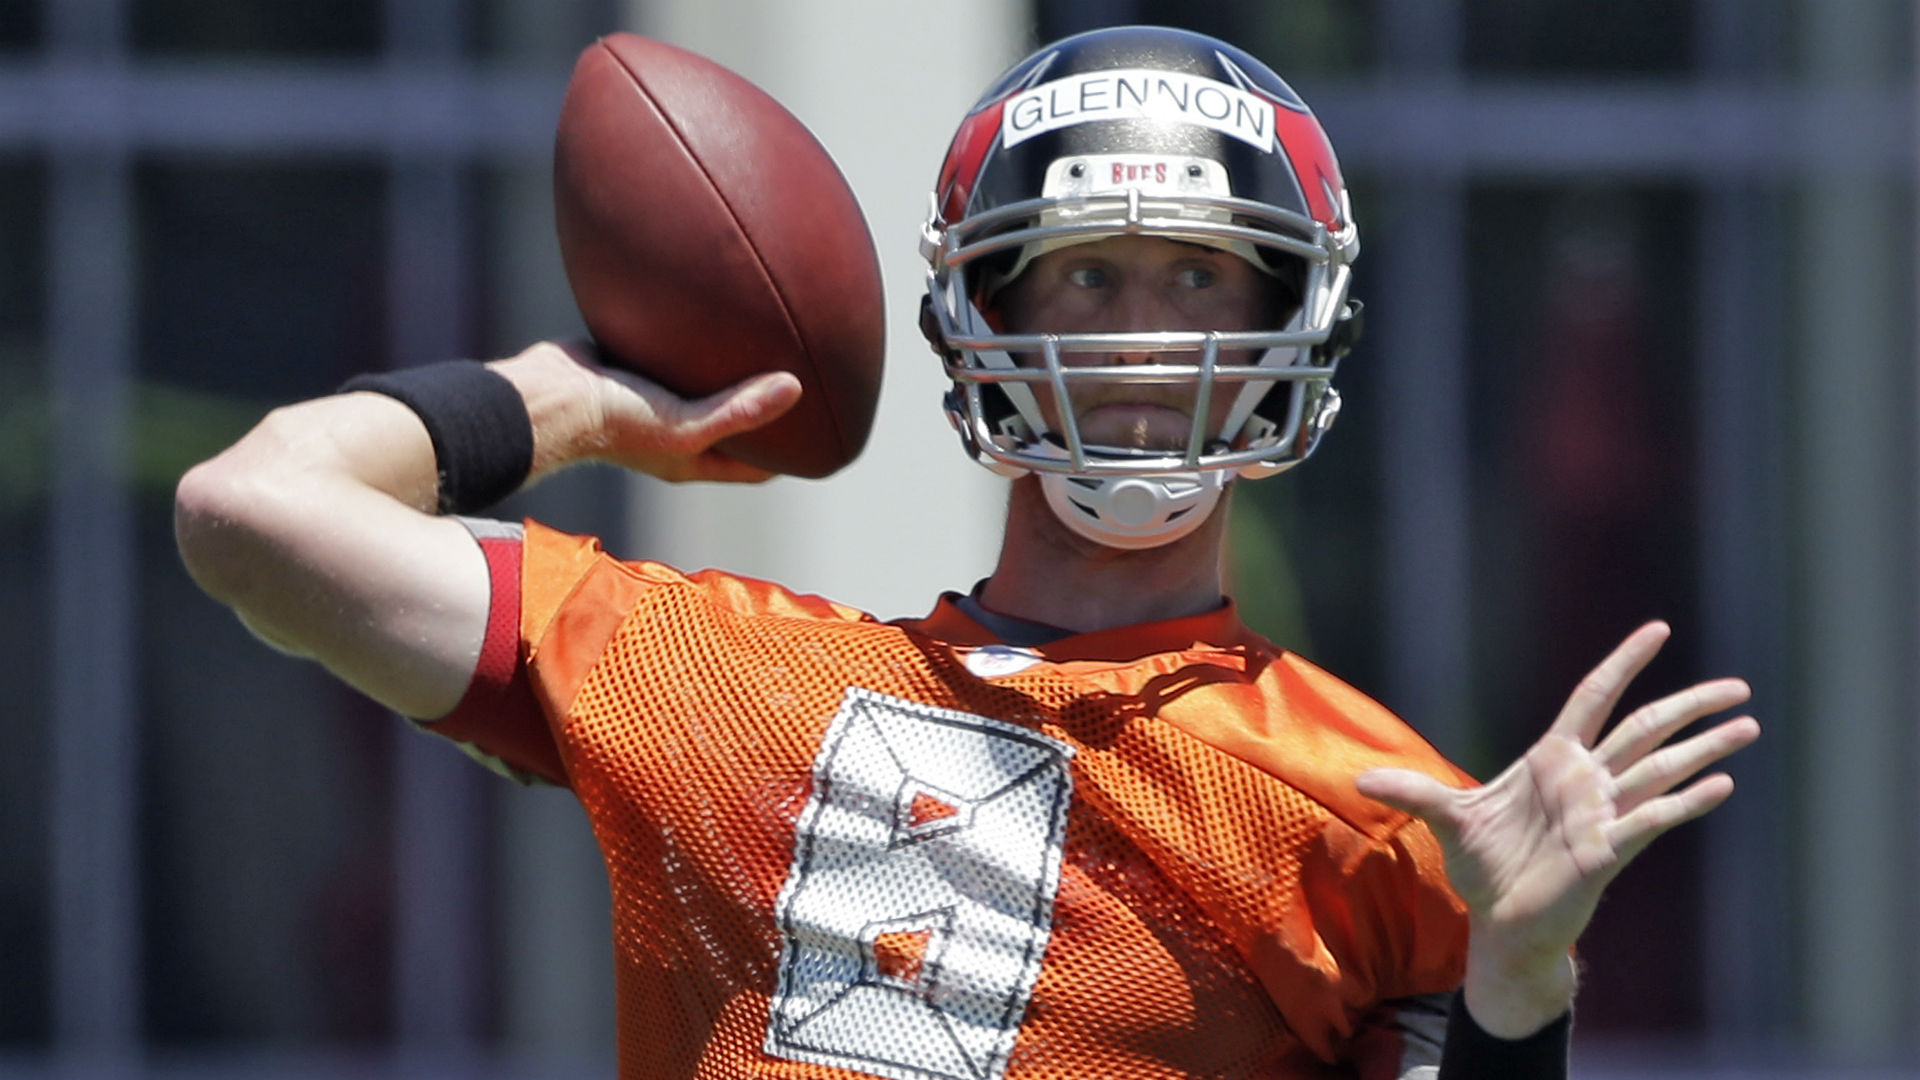 Mike Glennon in play as Buccaneers' starting QB